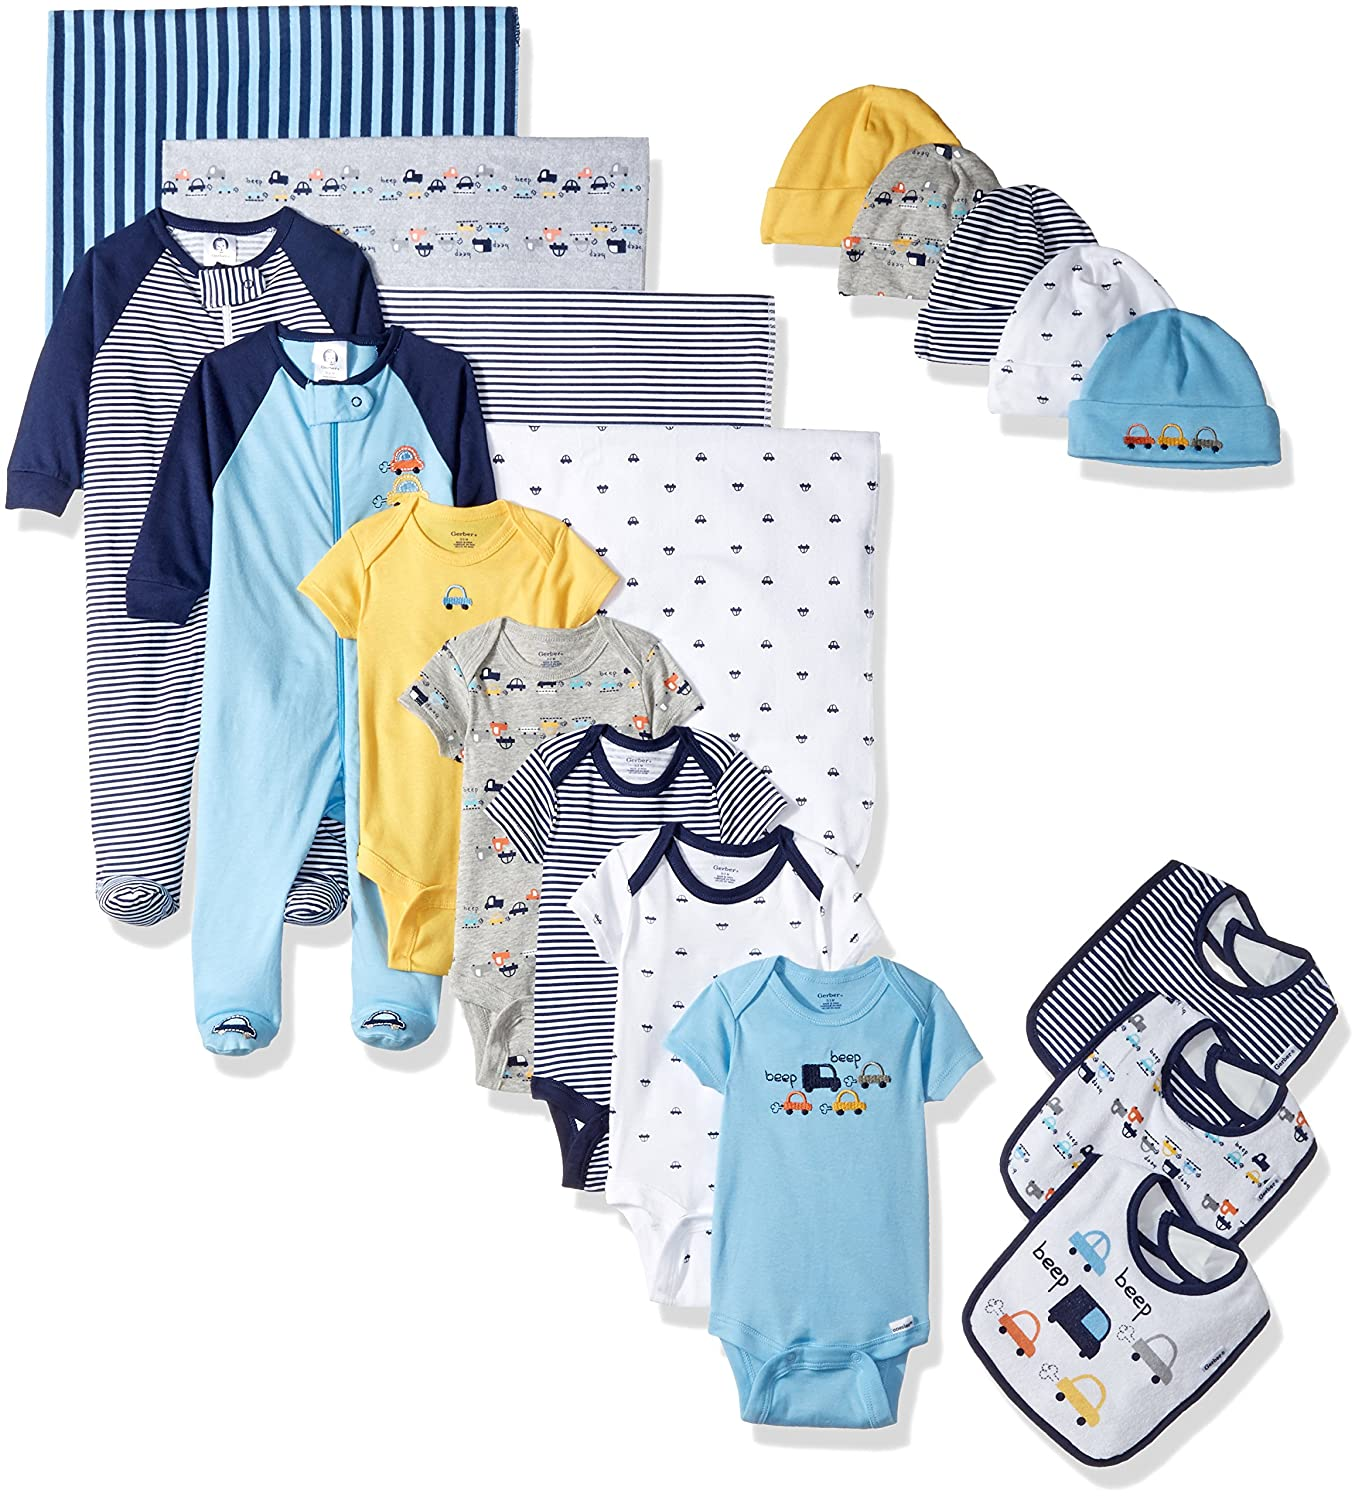 Gerber Baby Boys' 19-Piece Essentials Gift Set Little Athlete Newborn Gerber Children' s Apparel 10190016AB18AST